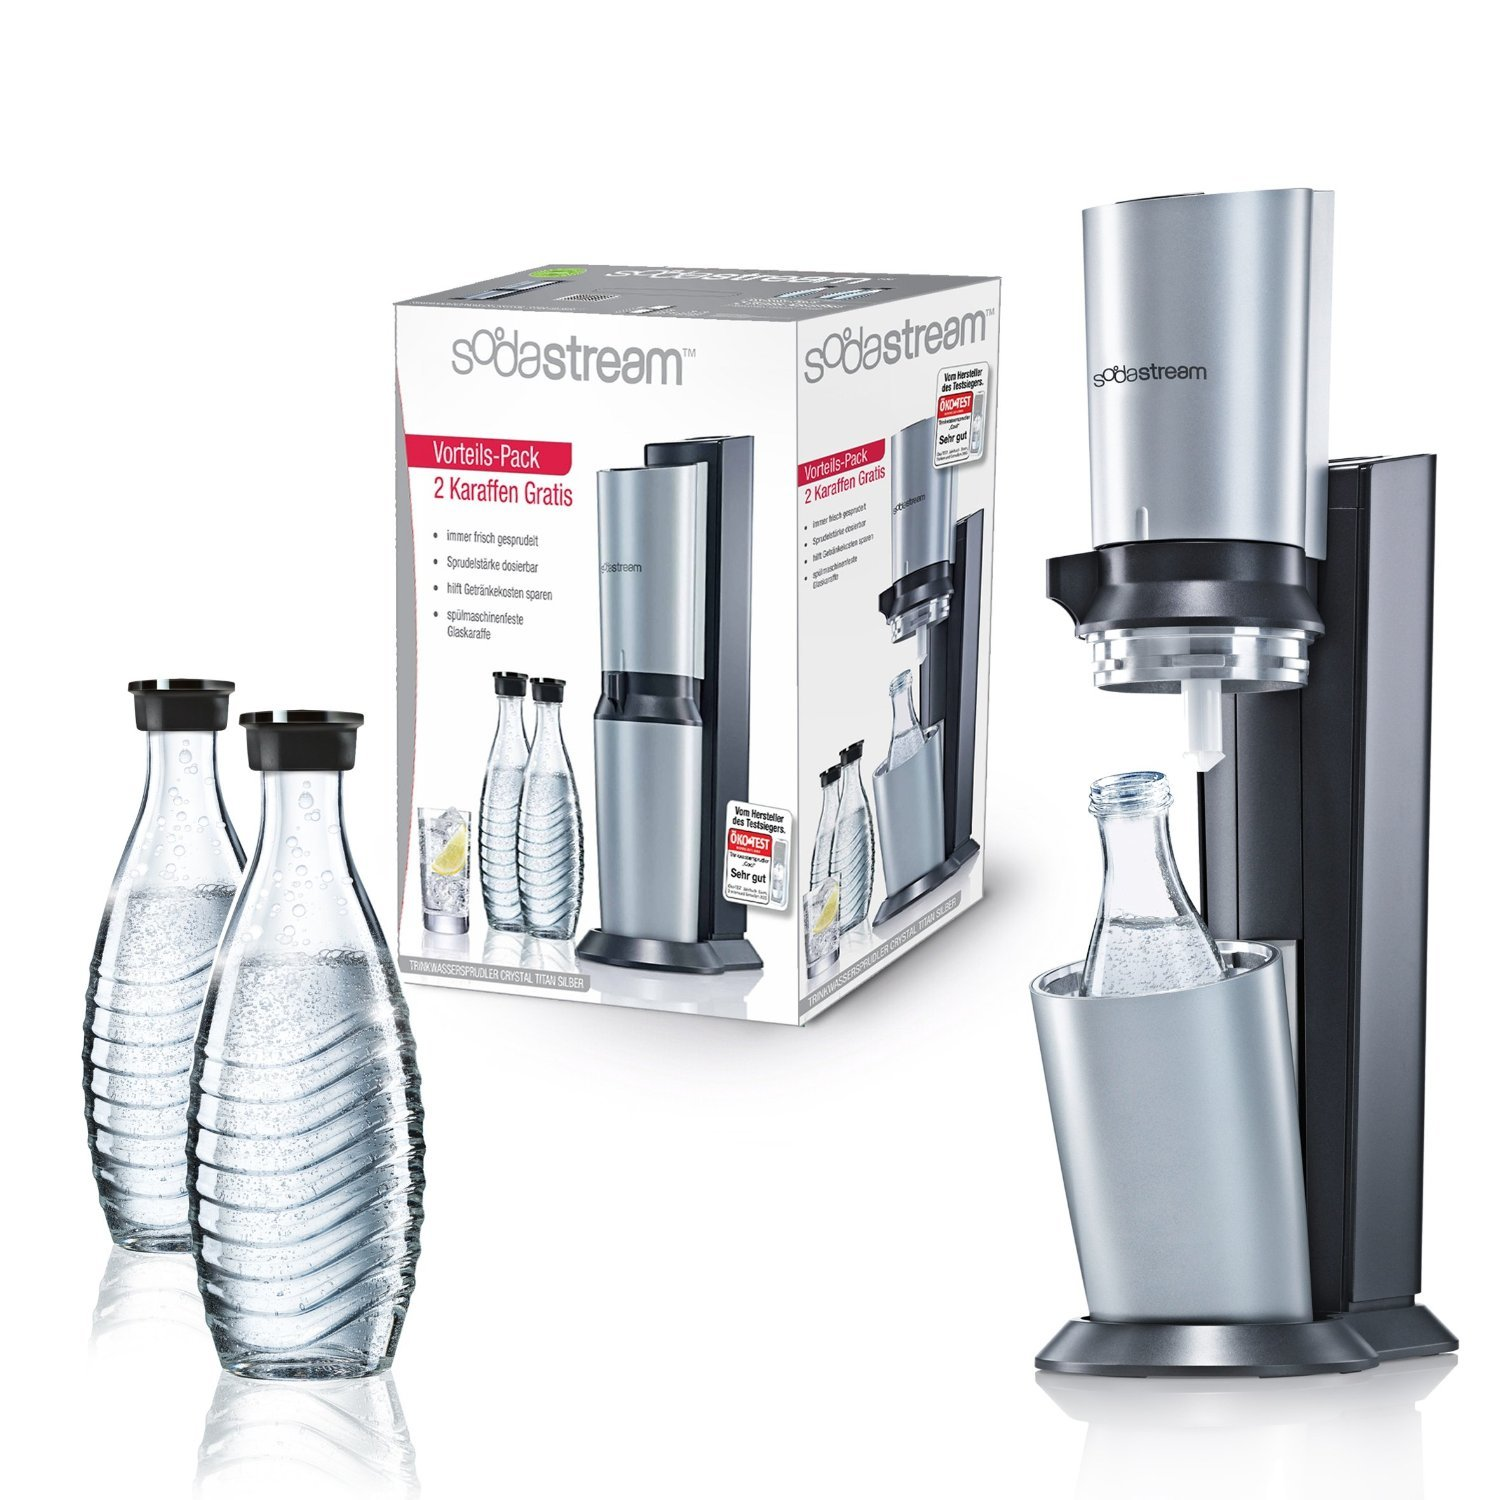 sodastream crystal set 3 karaffen 1 zylinder titan silber preisvergleich check24. Black Bedroom Furniture Sets. Home Design Ideas